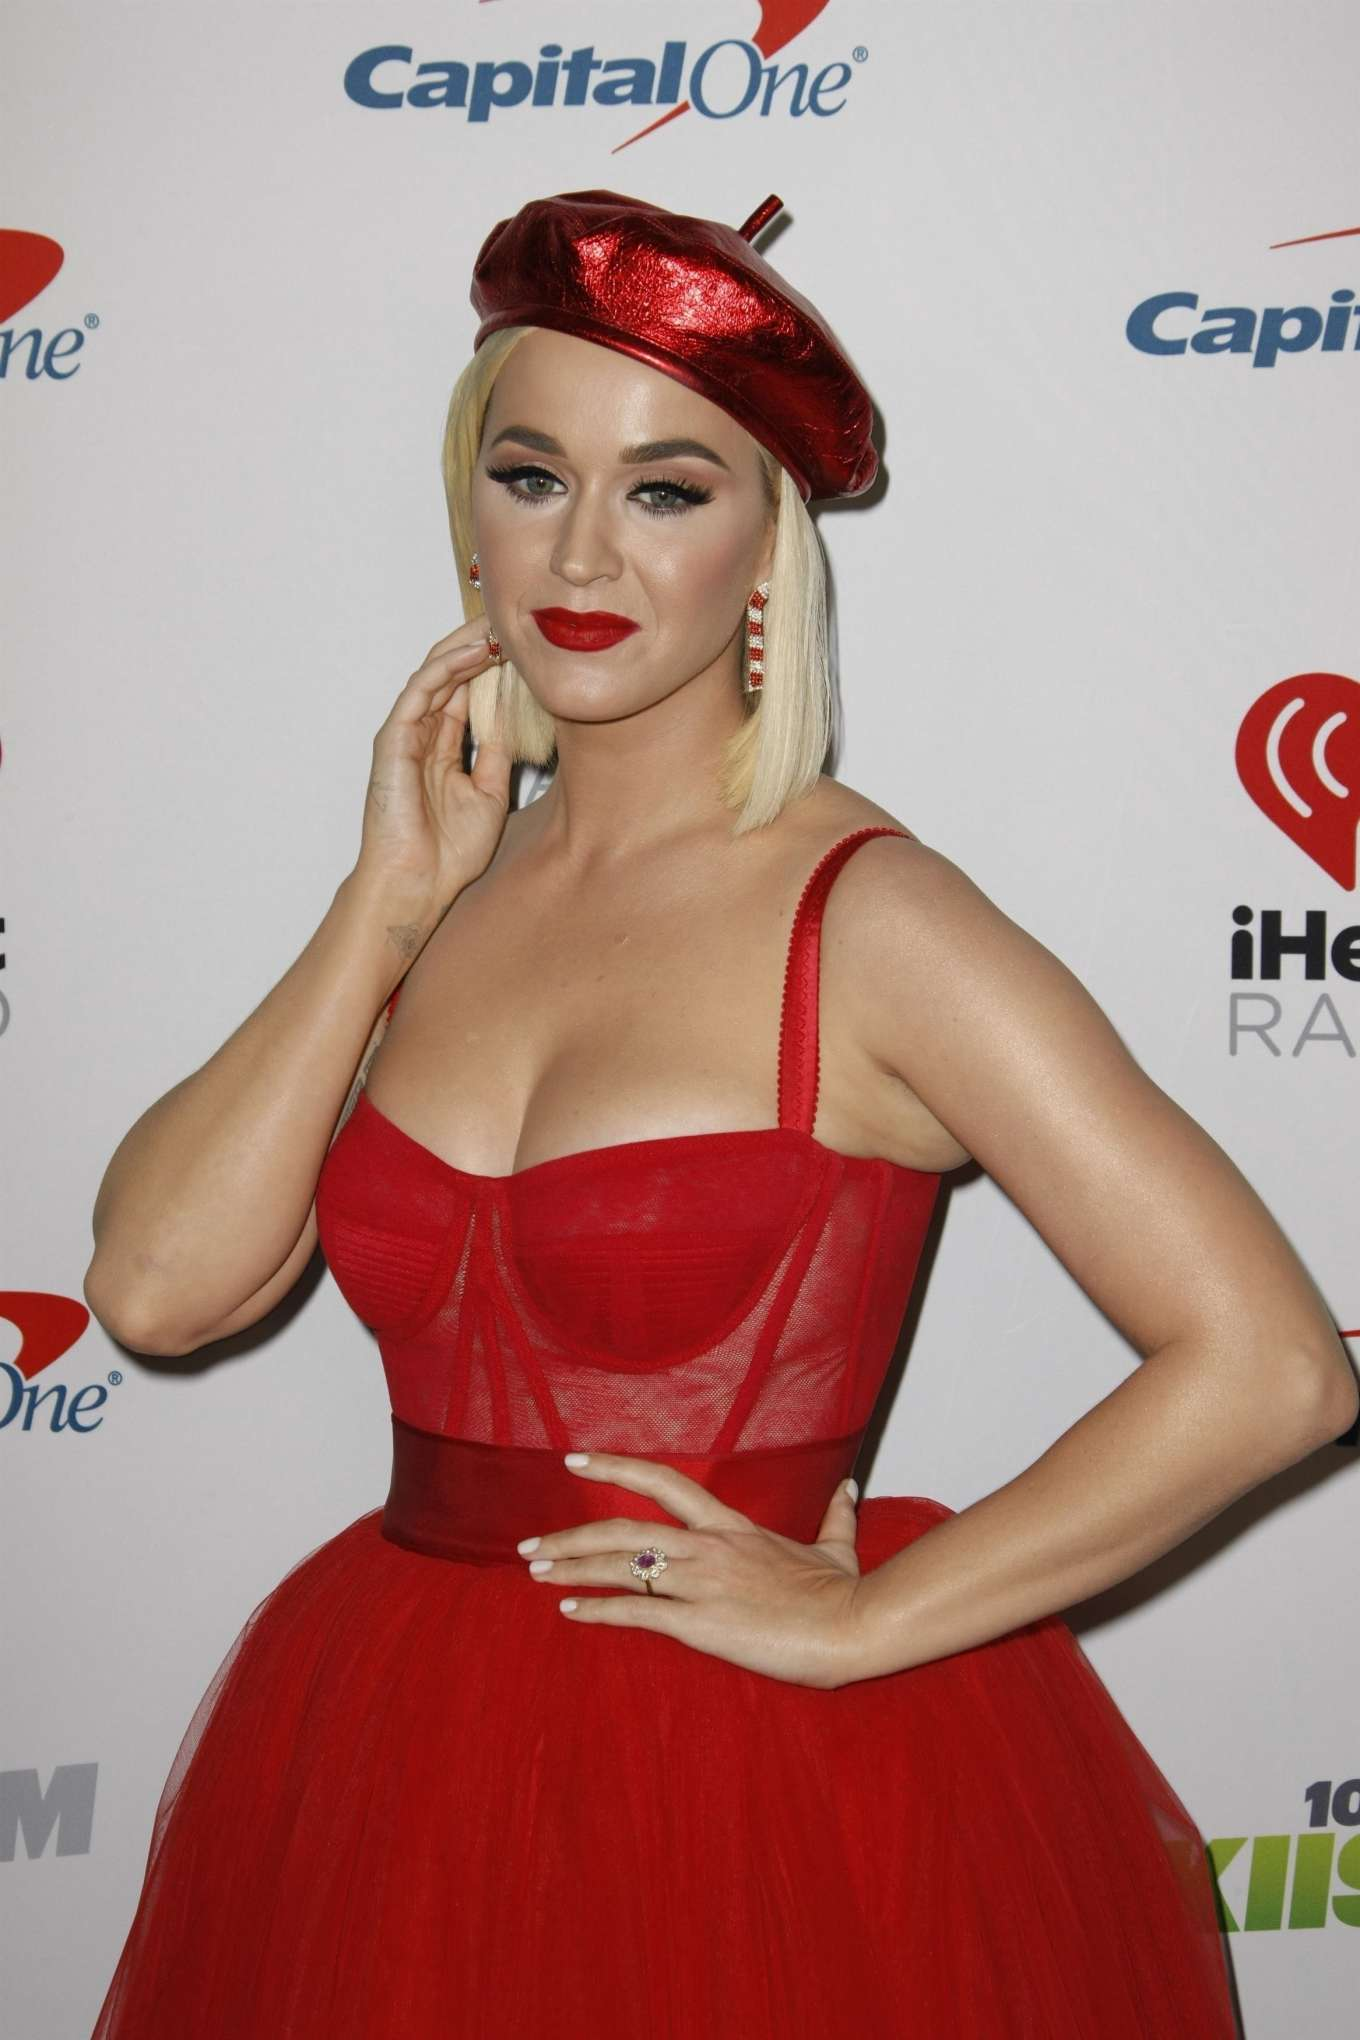 Katy Perry - 2019 KIIS FM's iHeartRadio Jingle Ball in Inglewood